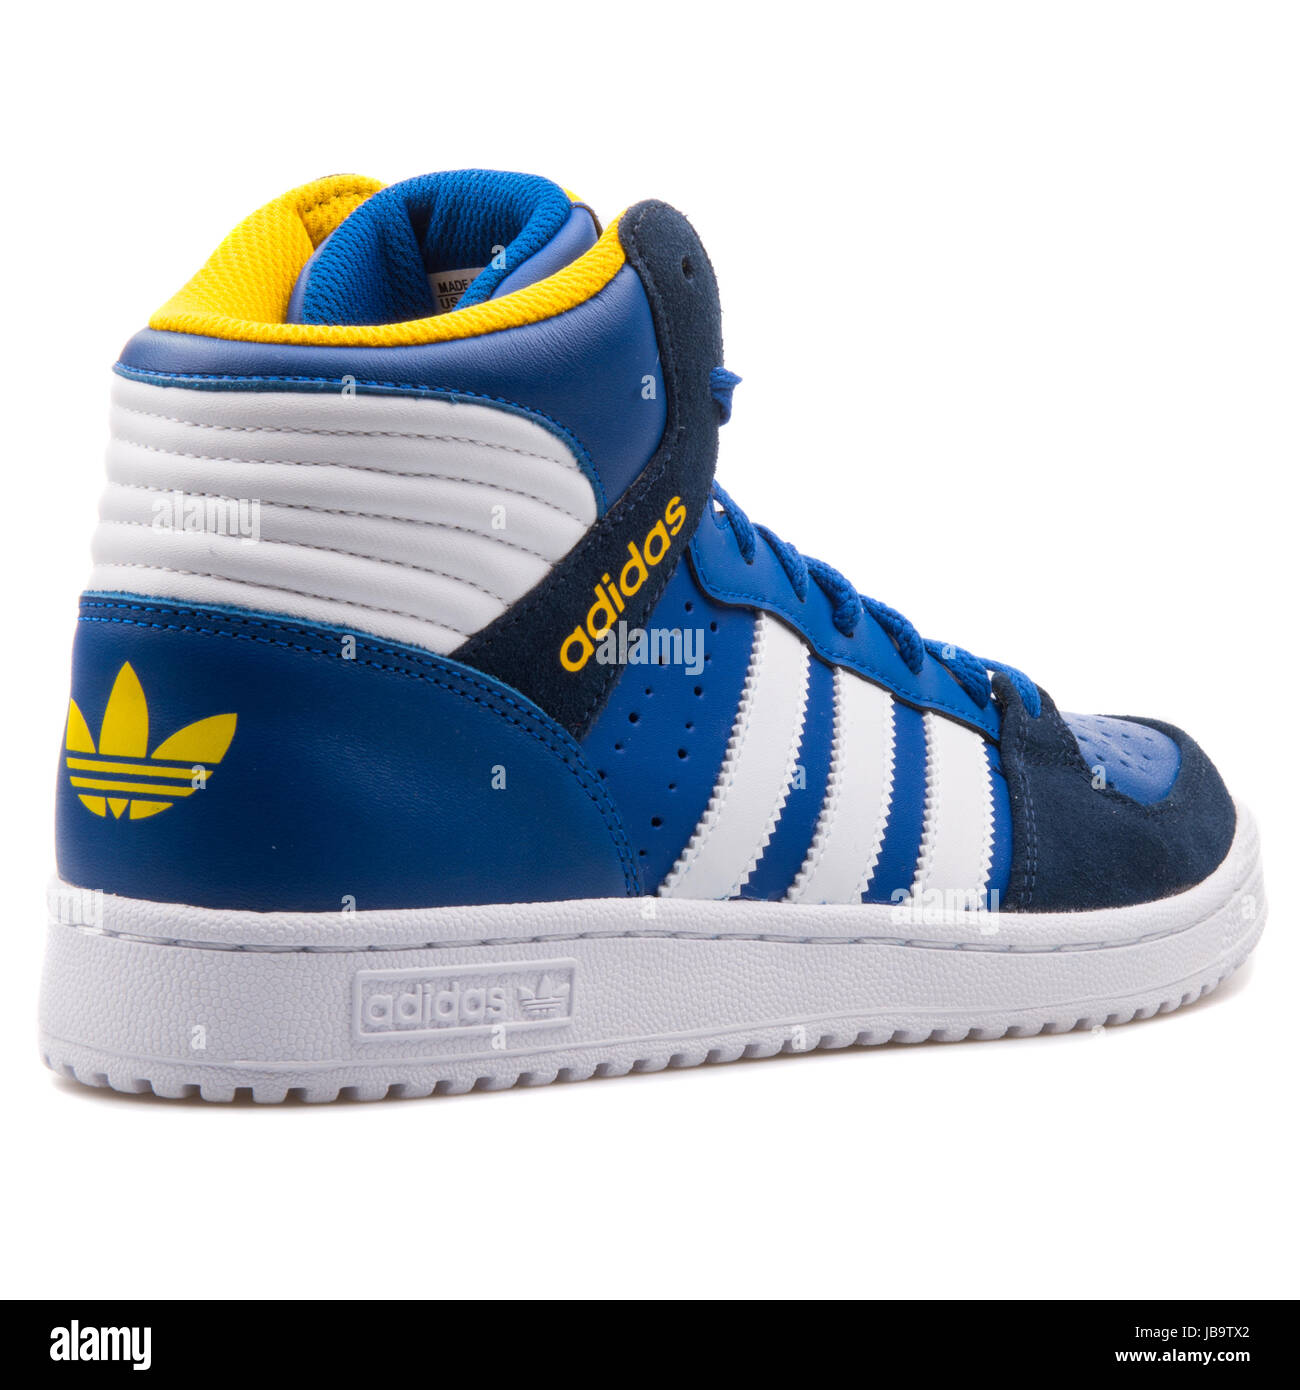 Adidas Pro Play 2 Blue, White and Yellow Men's Sports Sneakers